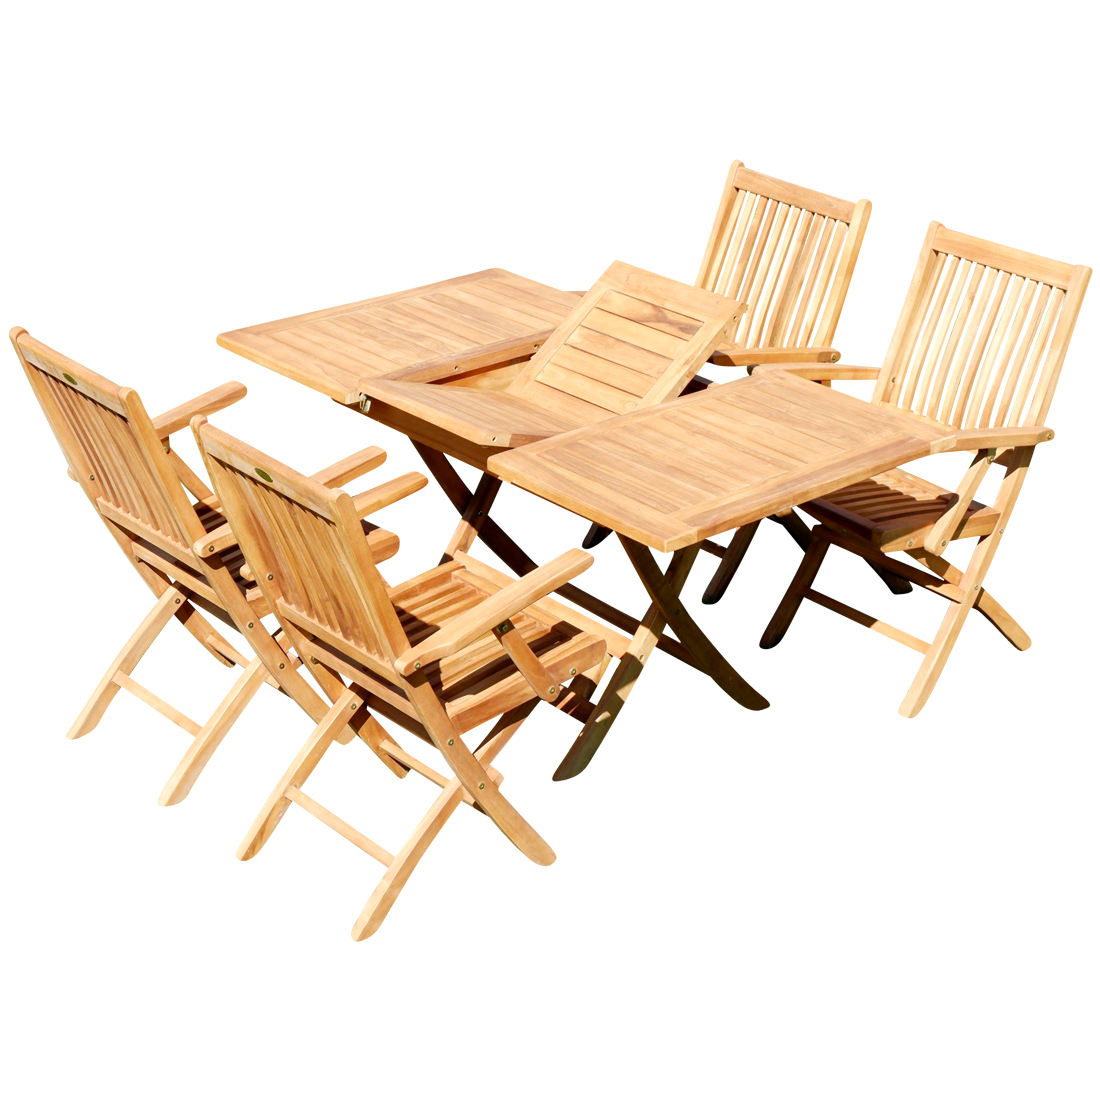 Teak Set Gartengarnitur Ausziehtisch 100 140 X 80 Cm 4 Klappsessel Mit Armlehne Holz Jav Aves As Superstore At